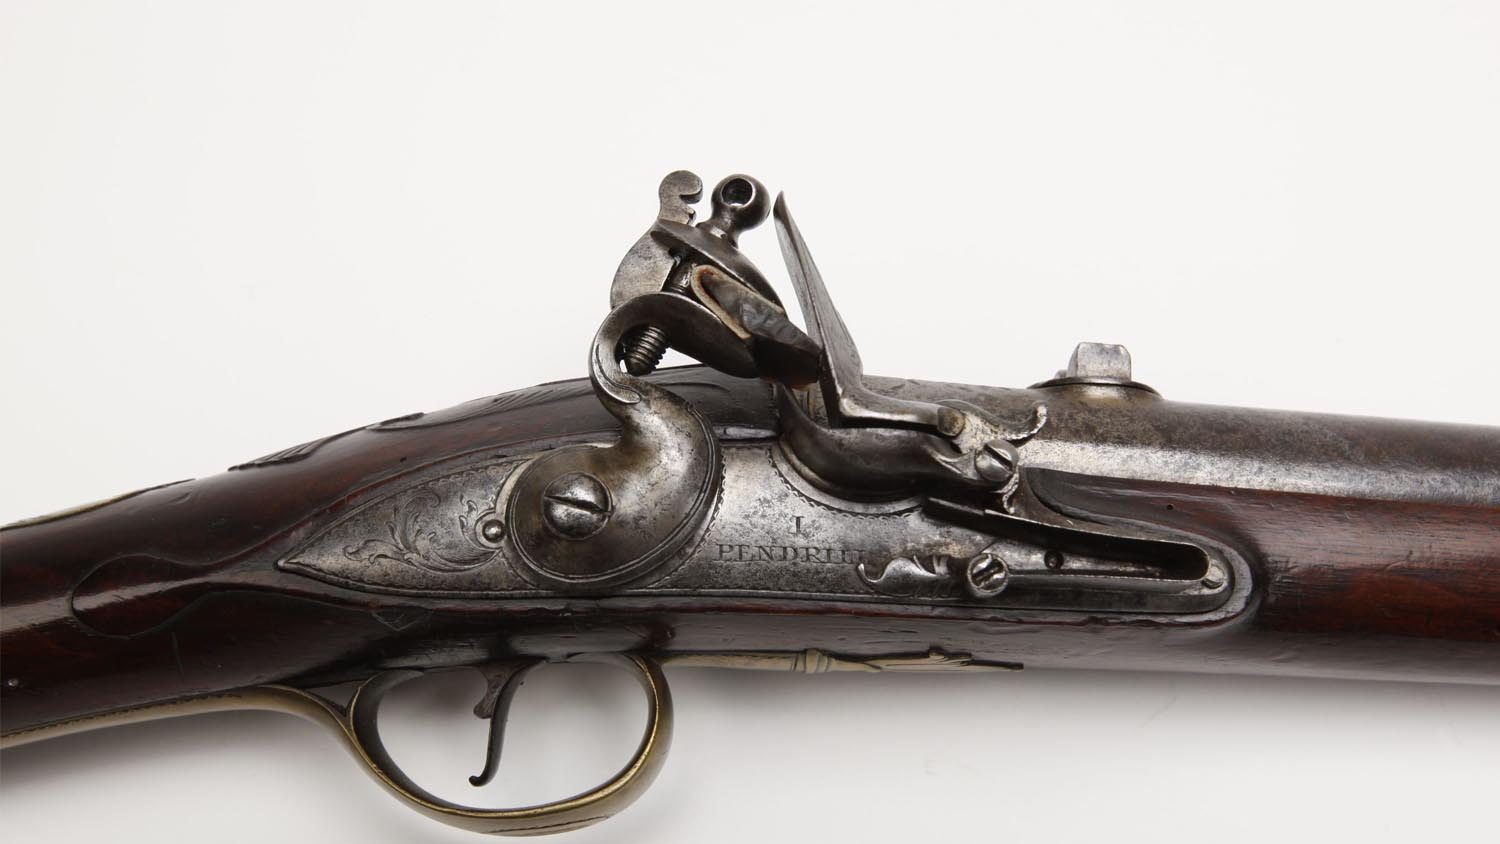 Gun of the Day: Pendrill Breechloader